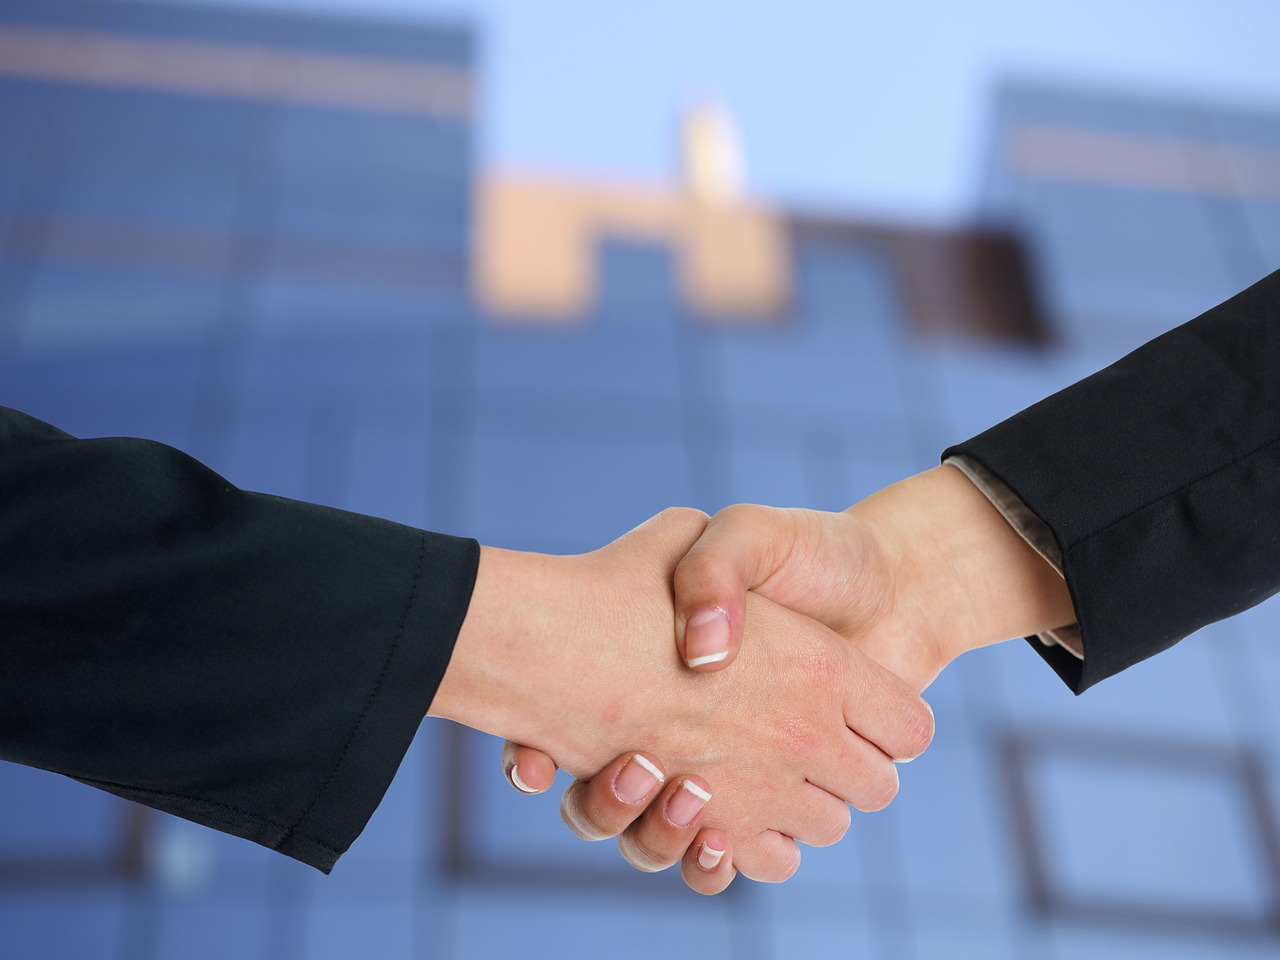 Handshake close up, showing deal between a real estate broker and client.